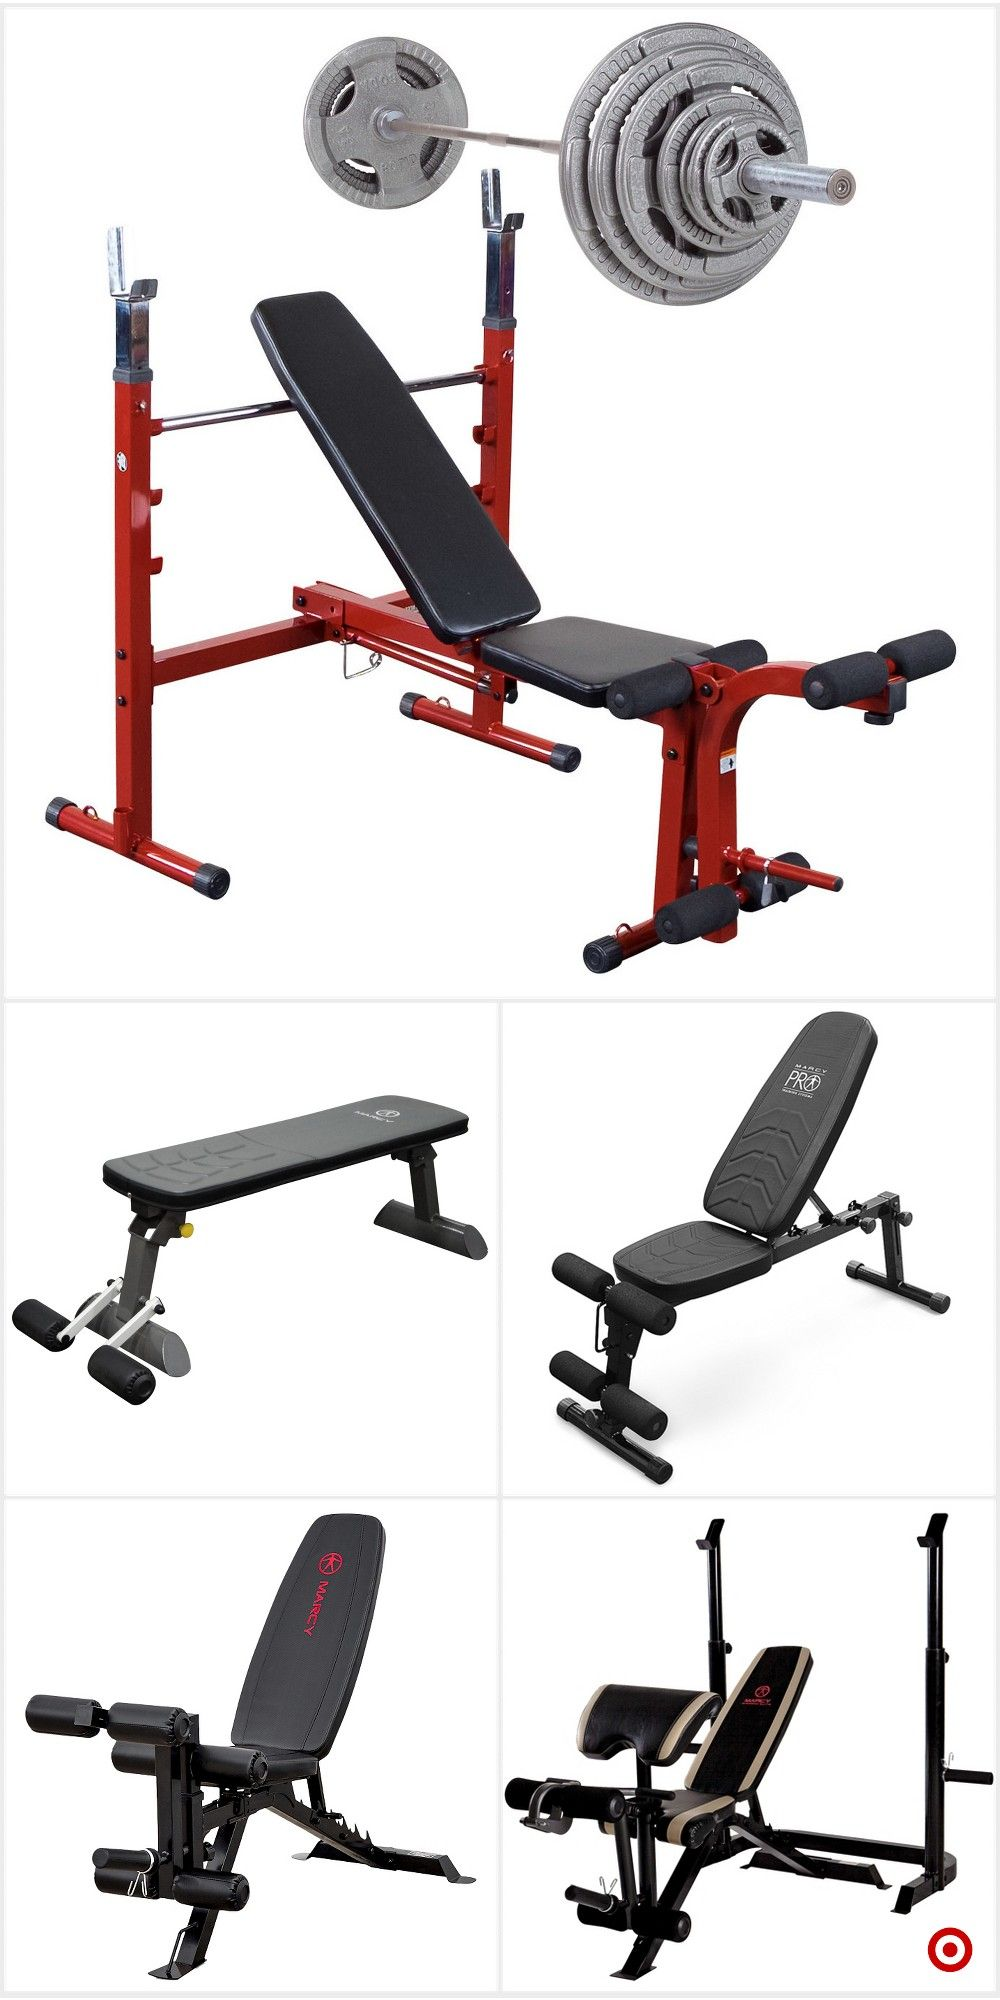 Shop Target For Weight Bench You Will Love At Great Low Prices Free Shipping On Orders Of 35 Or Free Same Day Pick Up In In 2020 At Home Gym Weight Benches Home